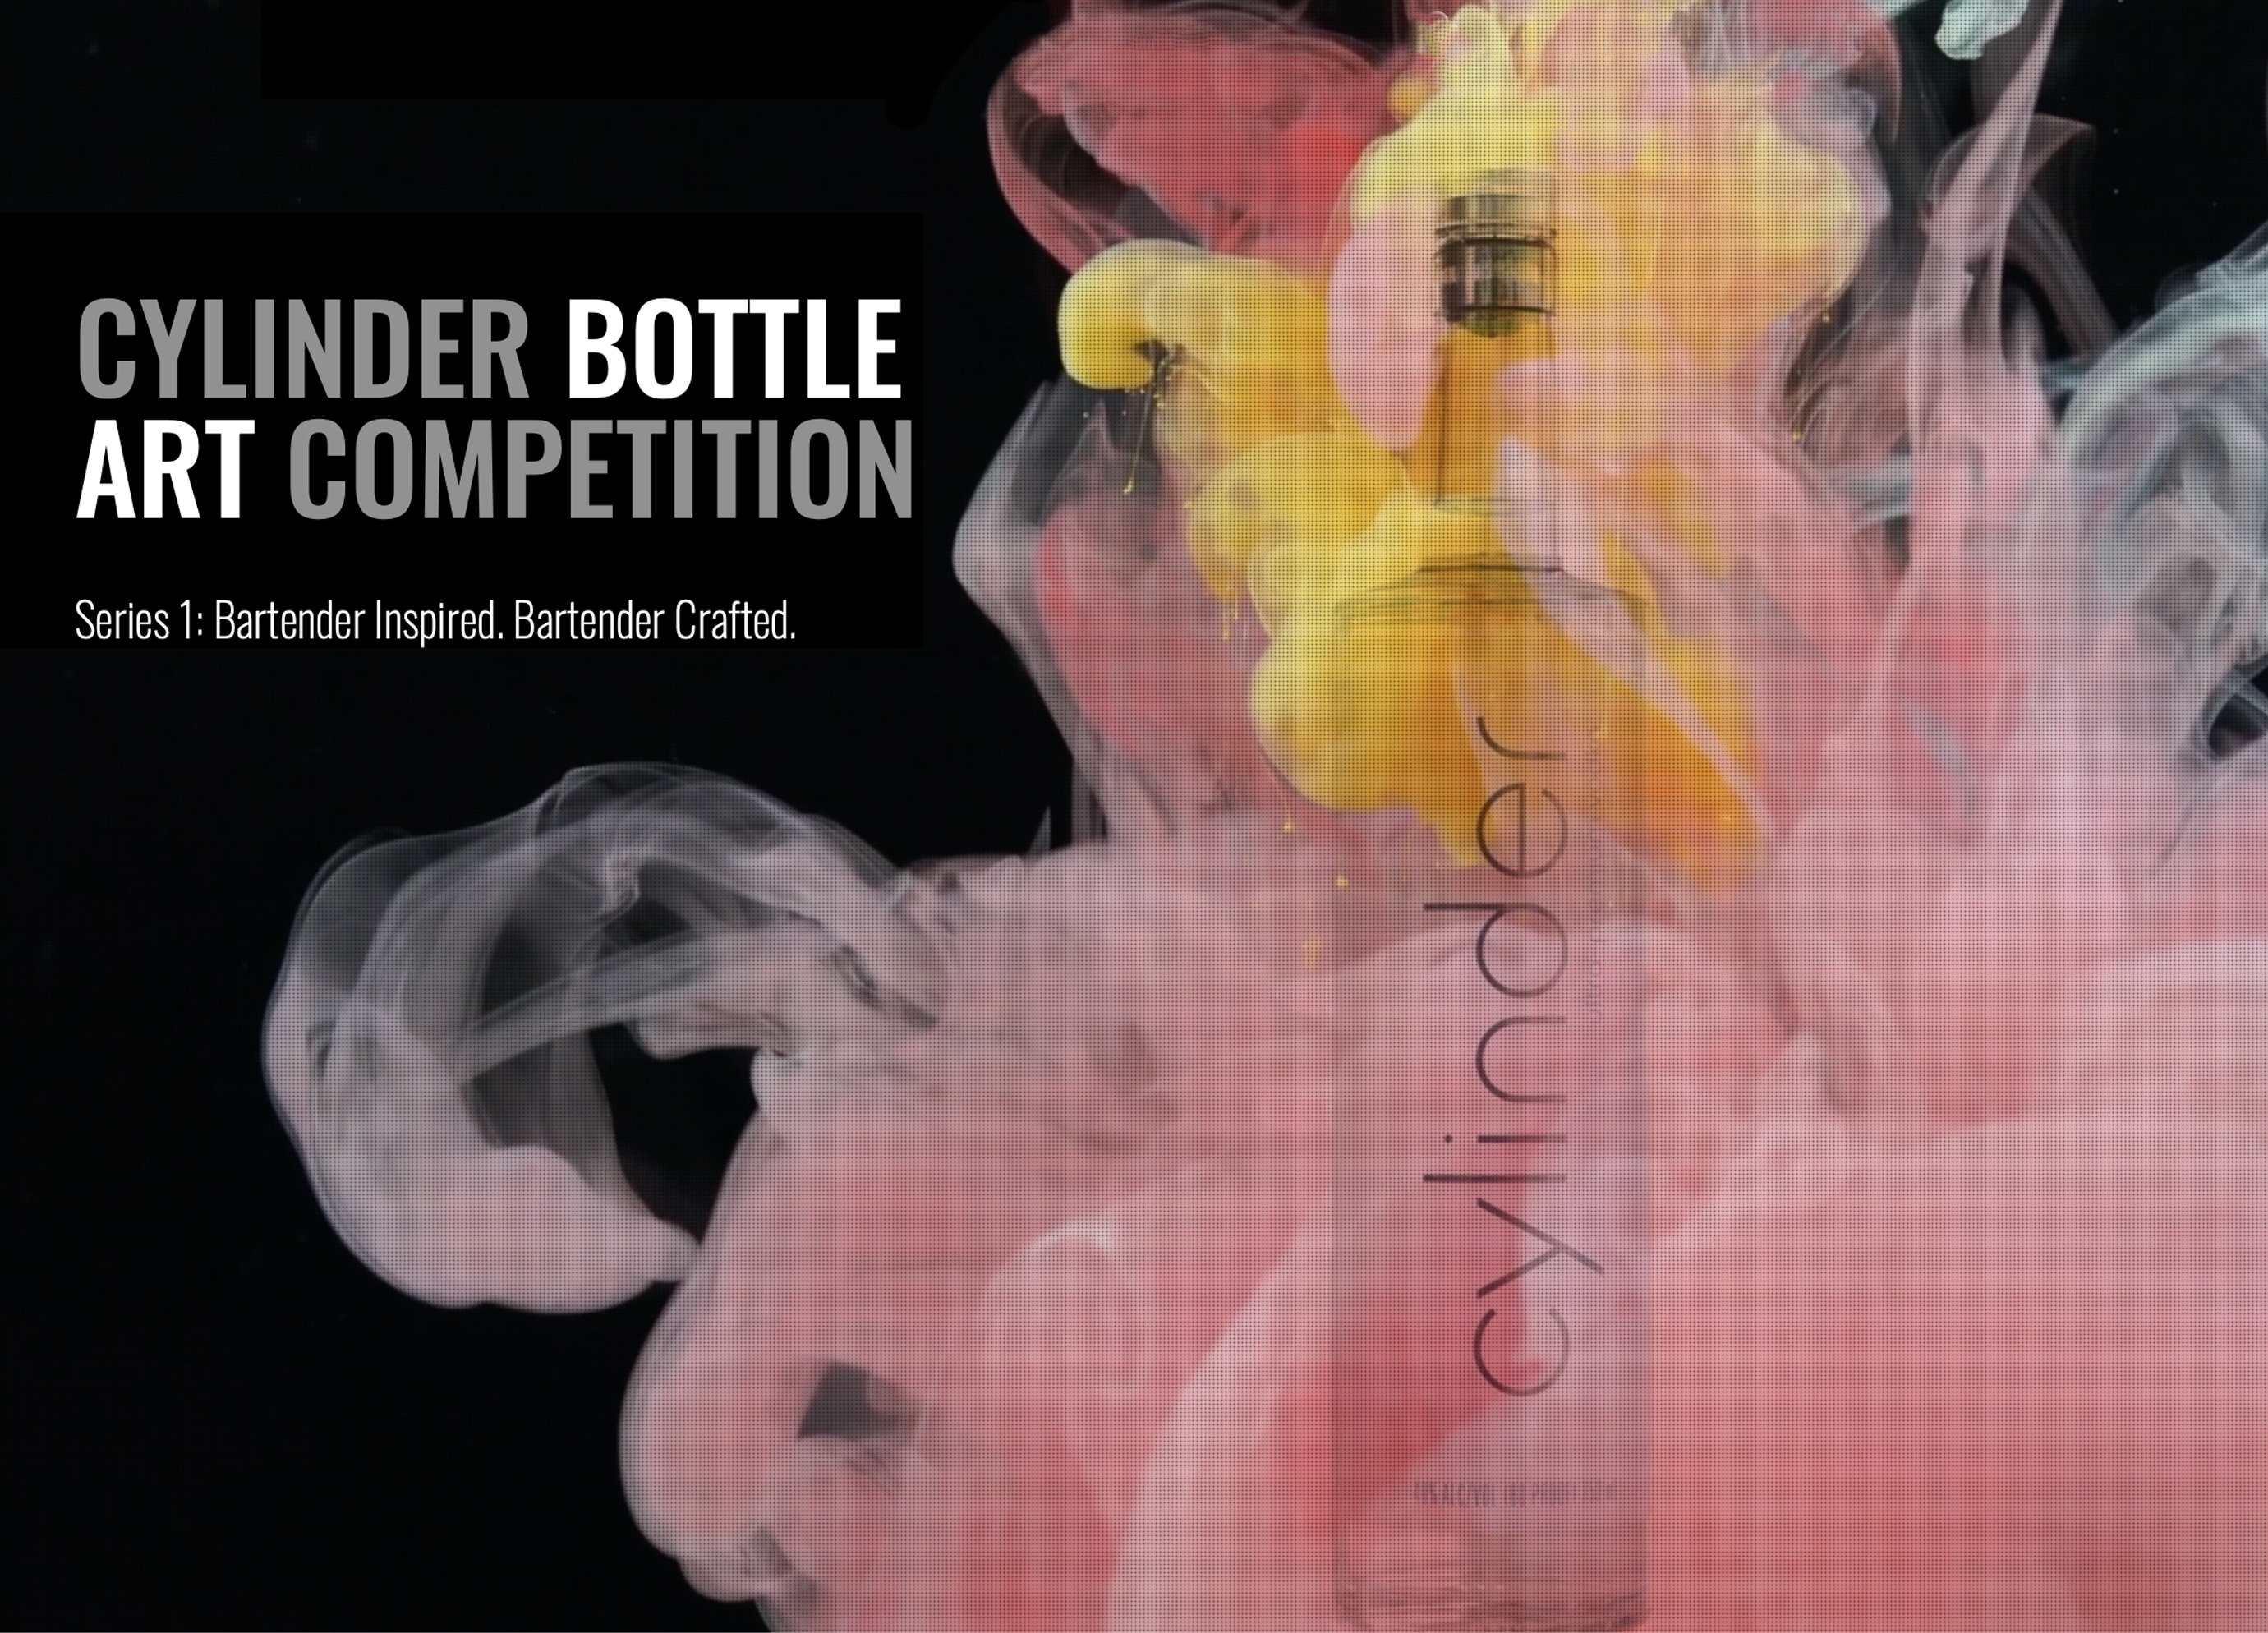 Cylinder® Vodka is taking artwork submissions for a limited-edition Cylinder 2021 bottle. To enter, visit Cylinder Bottle Art Competition submission page (https://www.cylindervodka.com/art) through April 15, 2021.